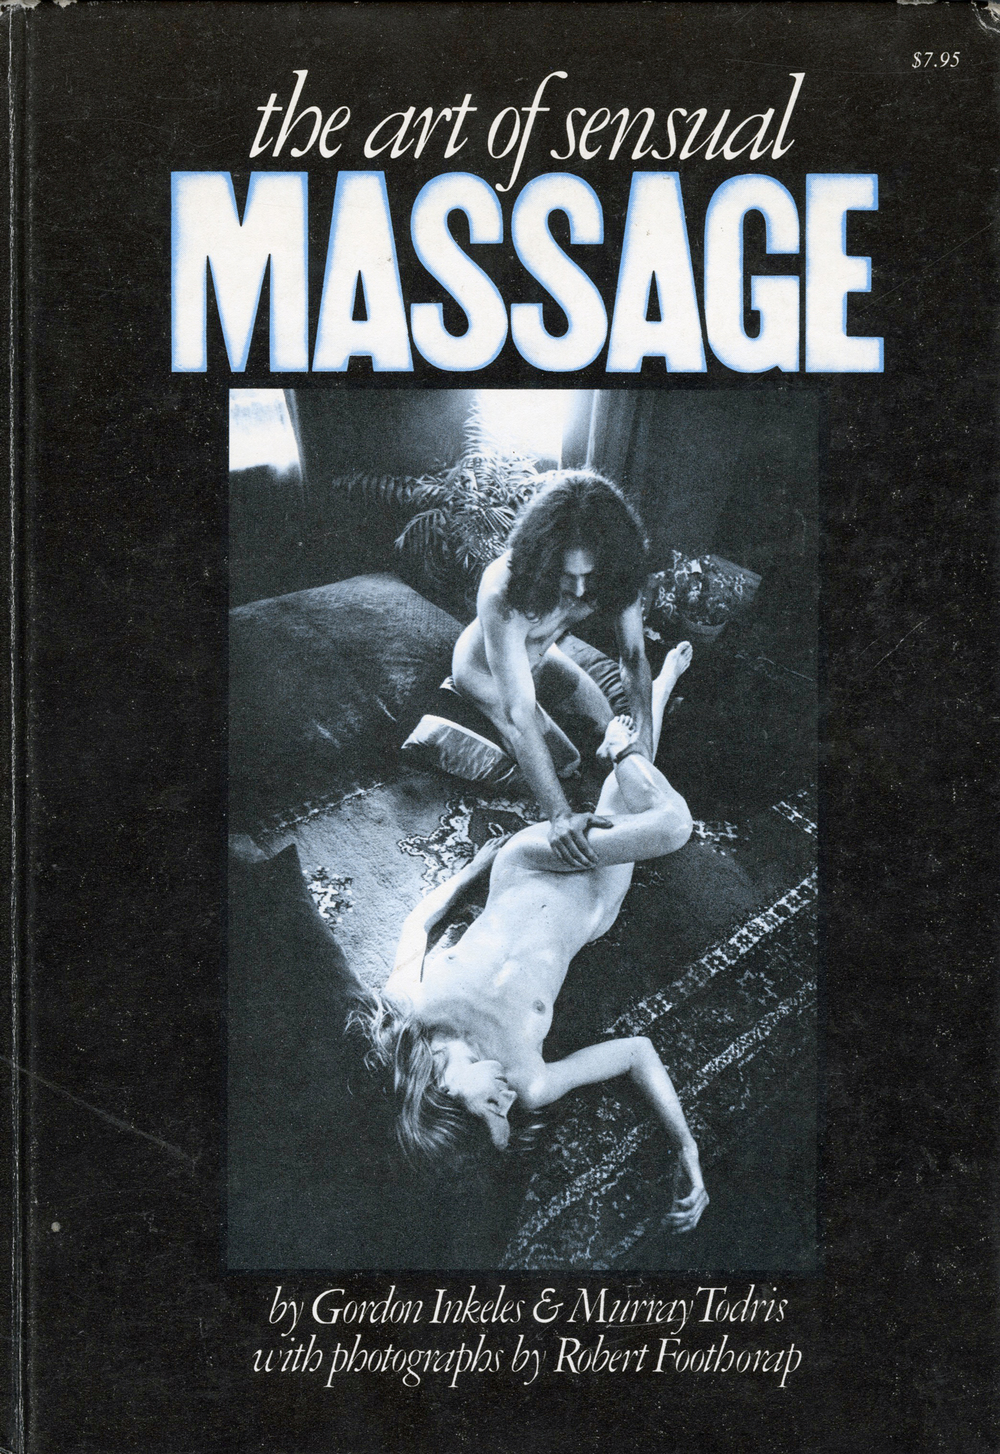 The Art of Sensual Massage, 1972